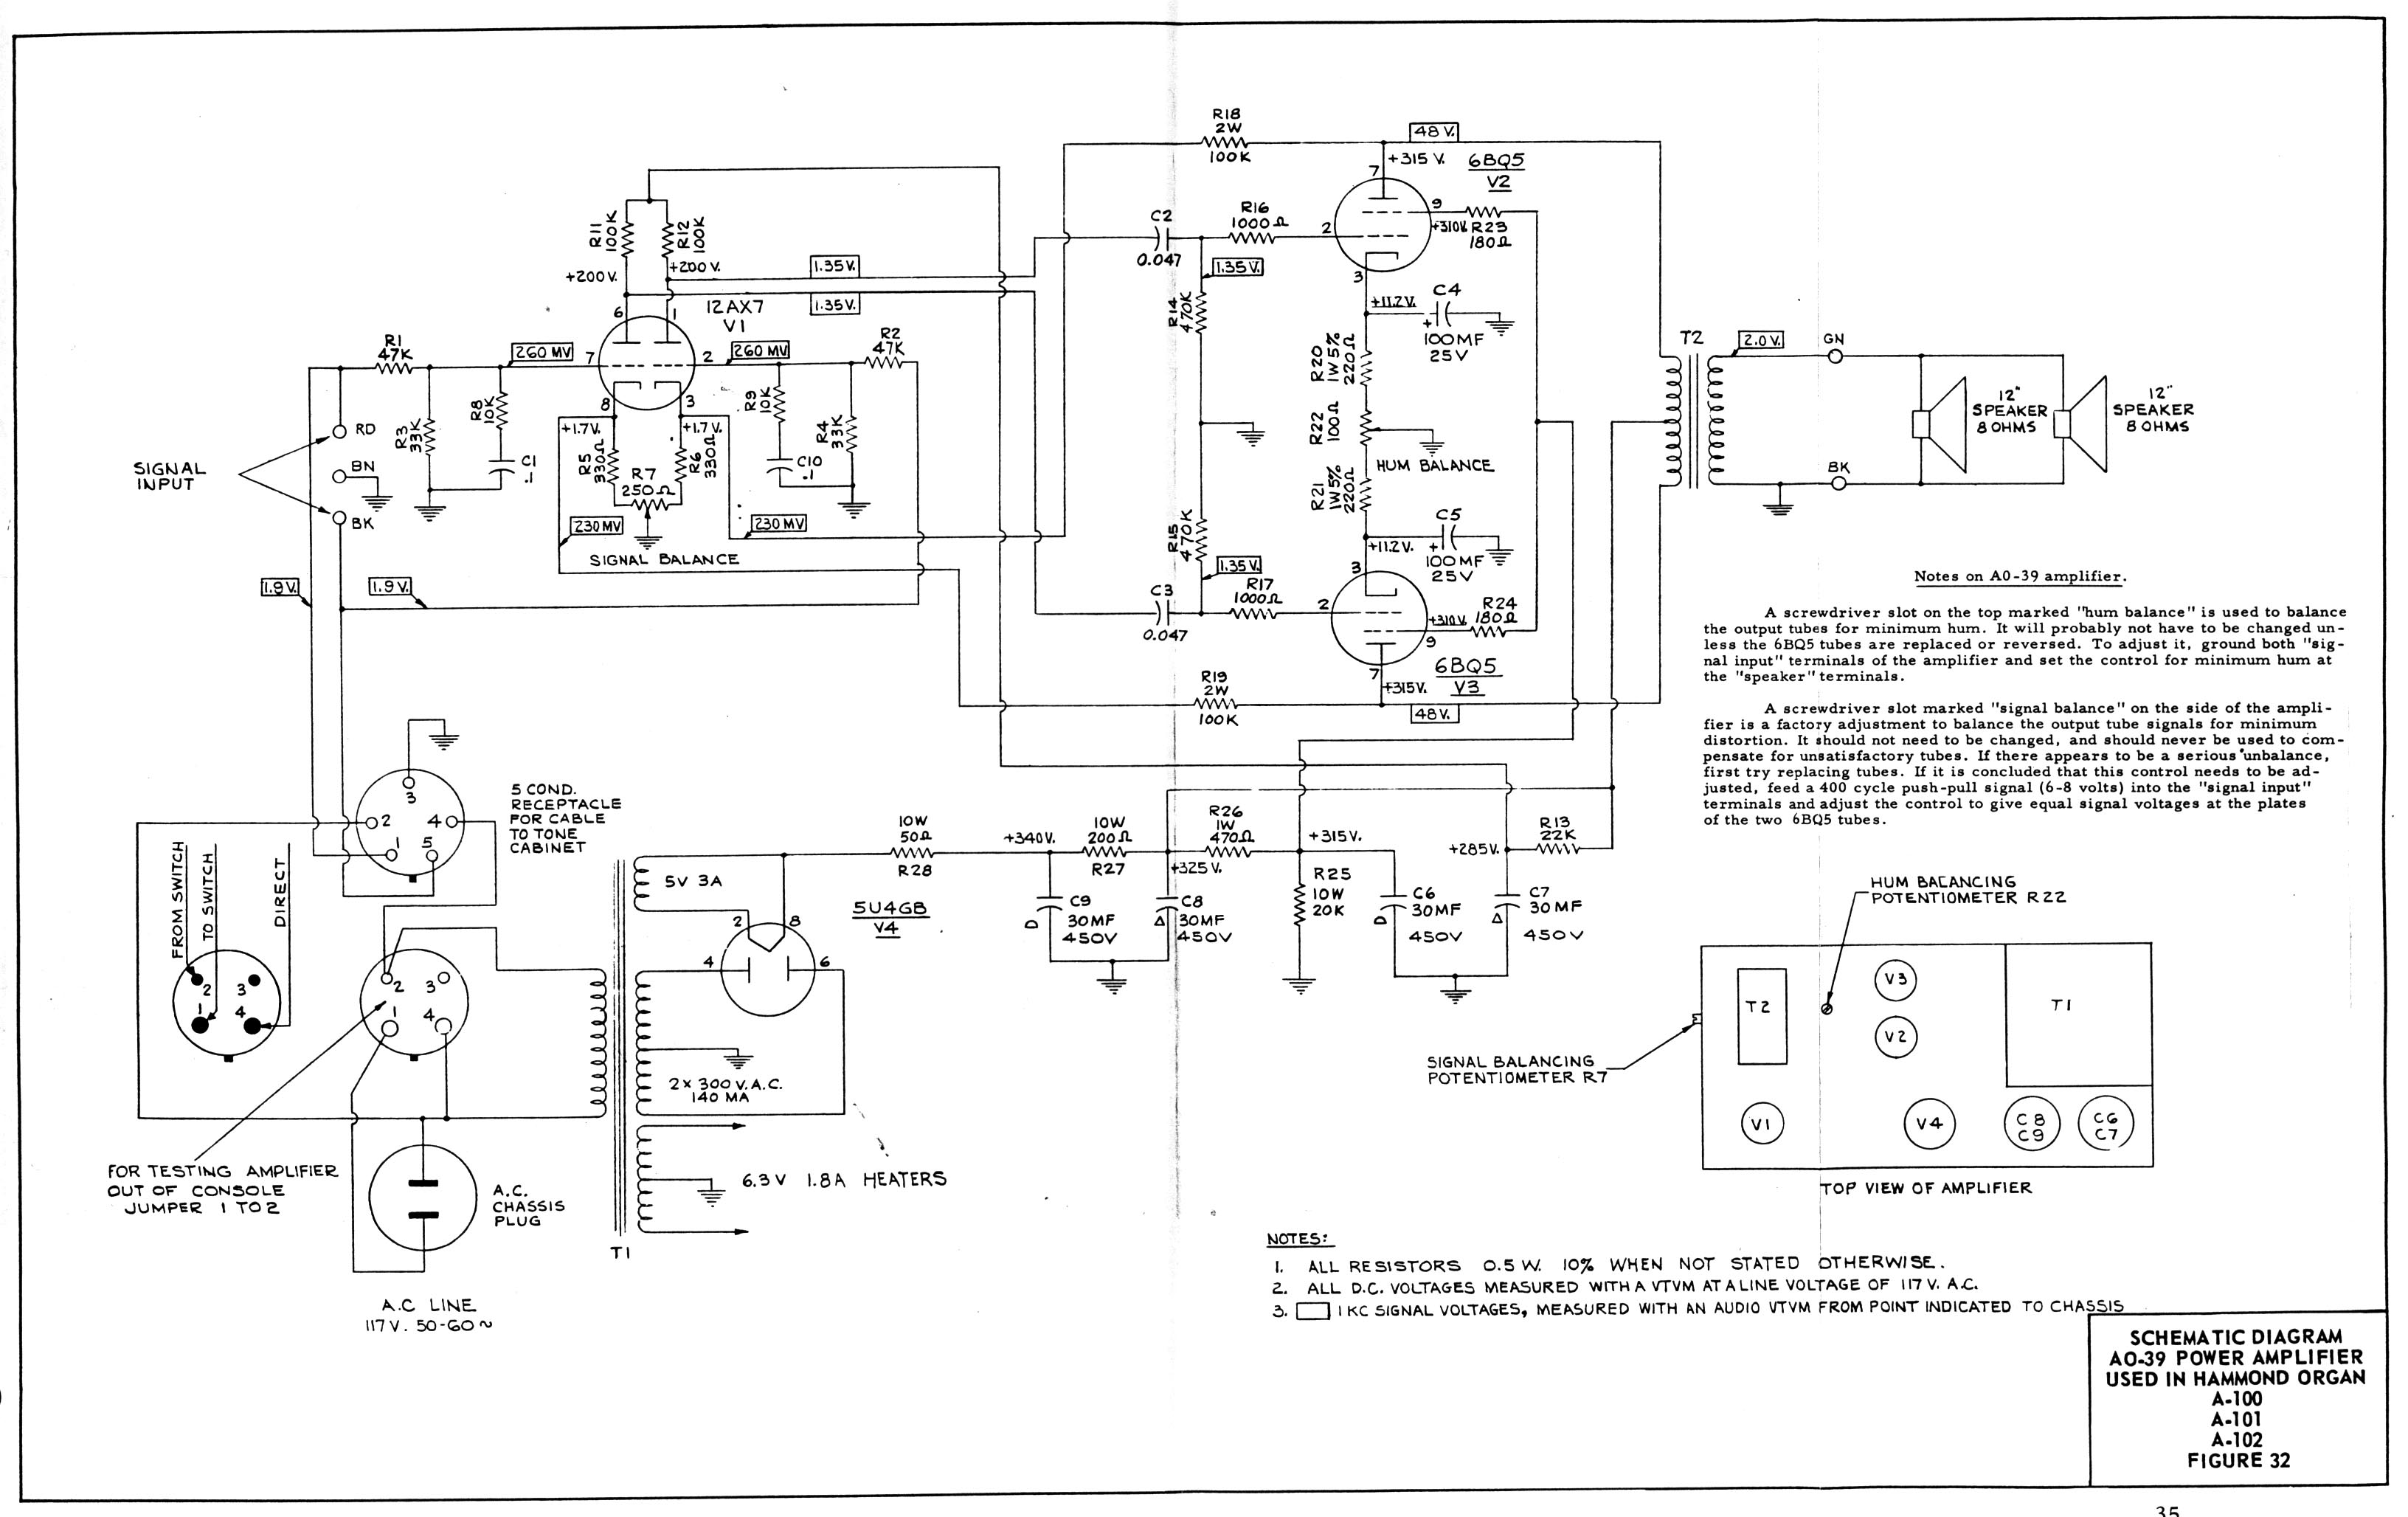 a 100 service manual rh theatreorgans com Basic Ignition Wiring Diagram Subaru Ecu Wiring Diagram